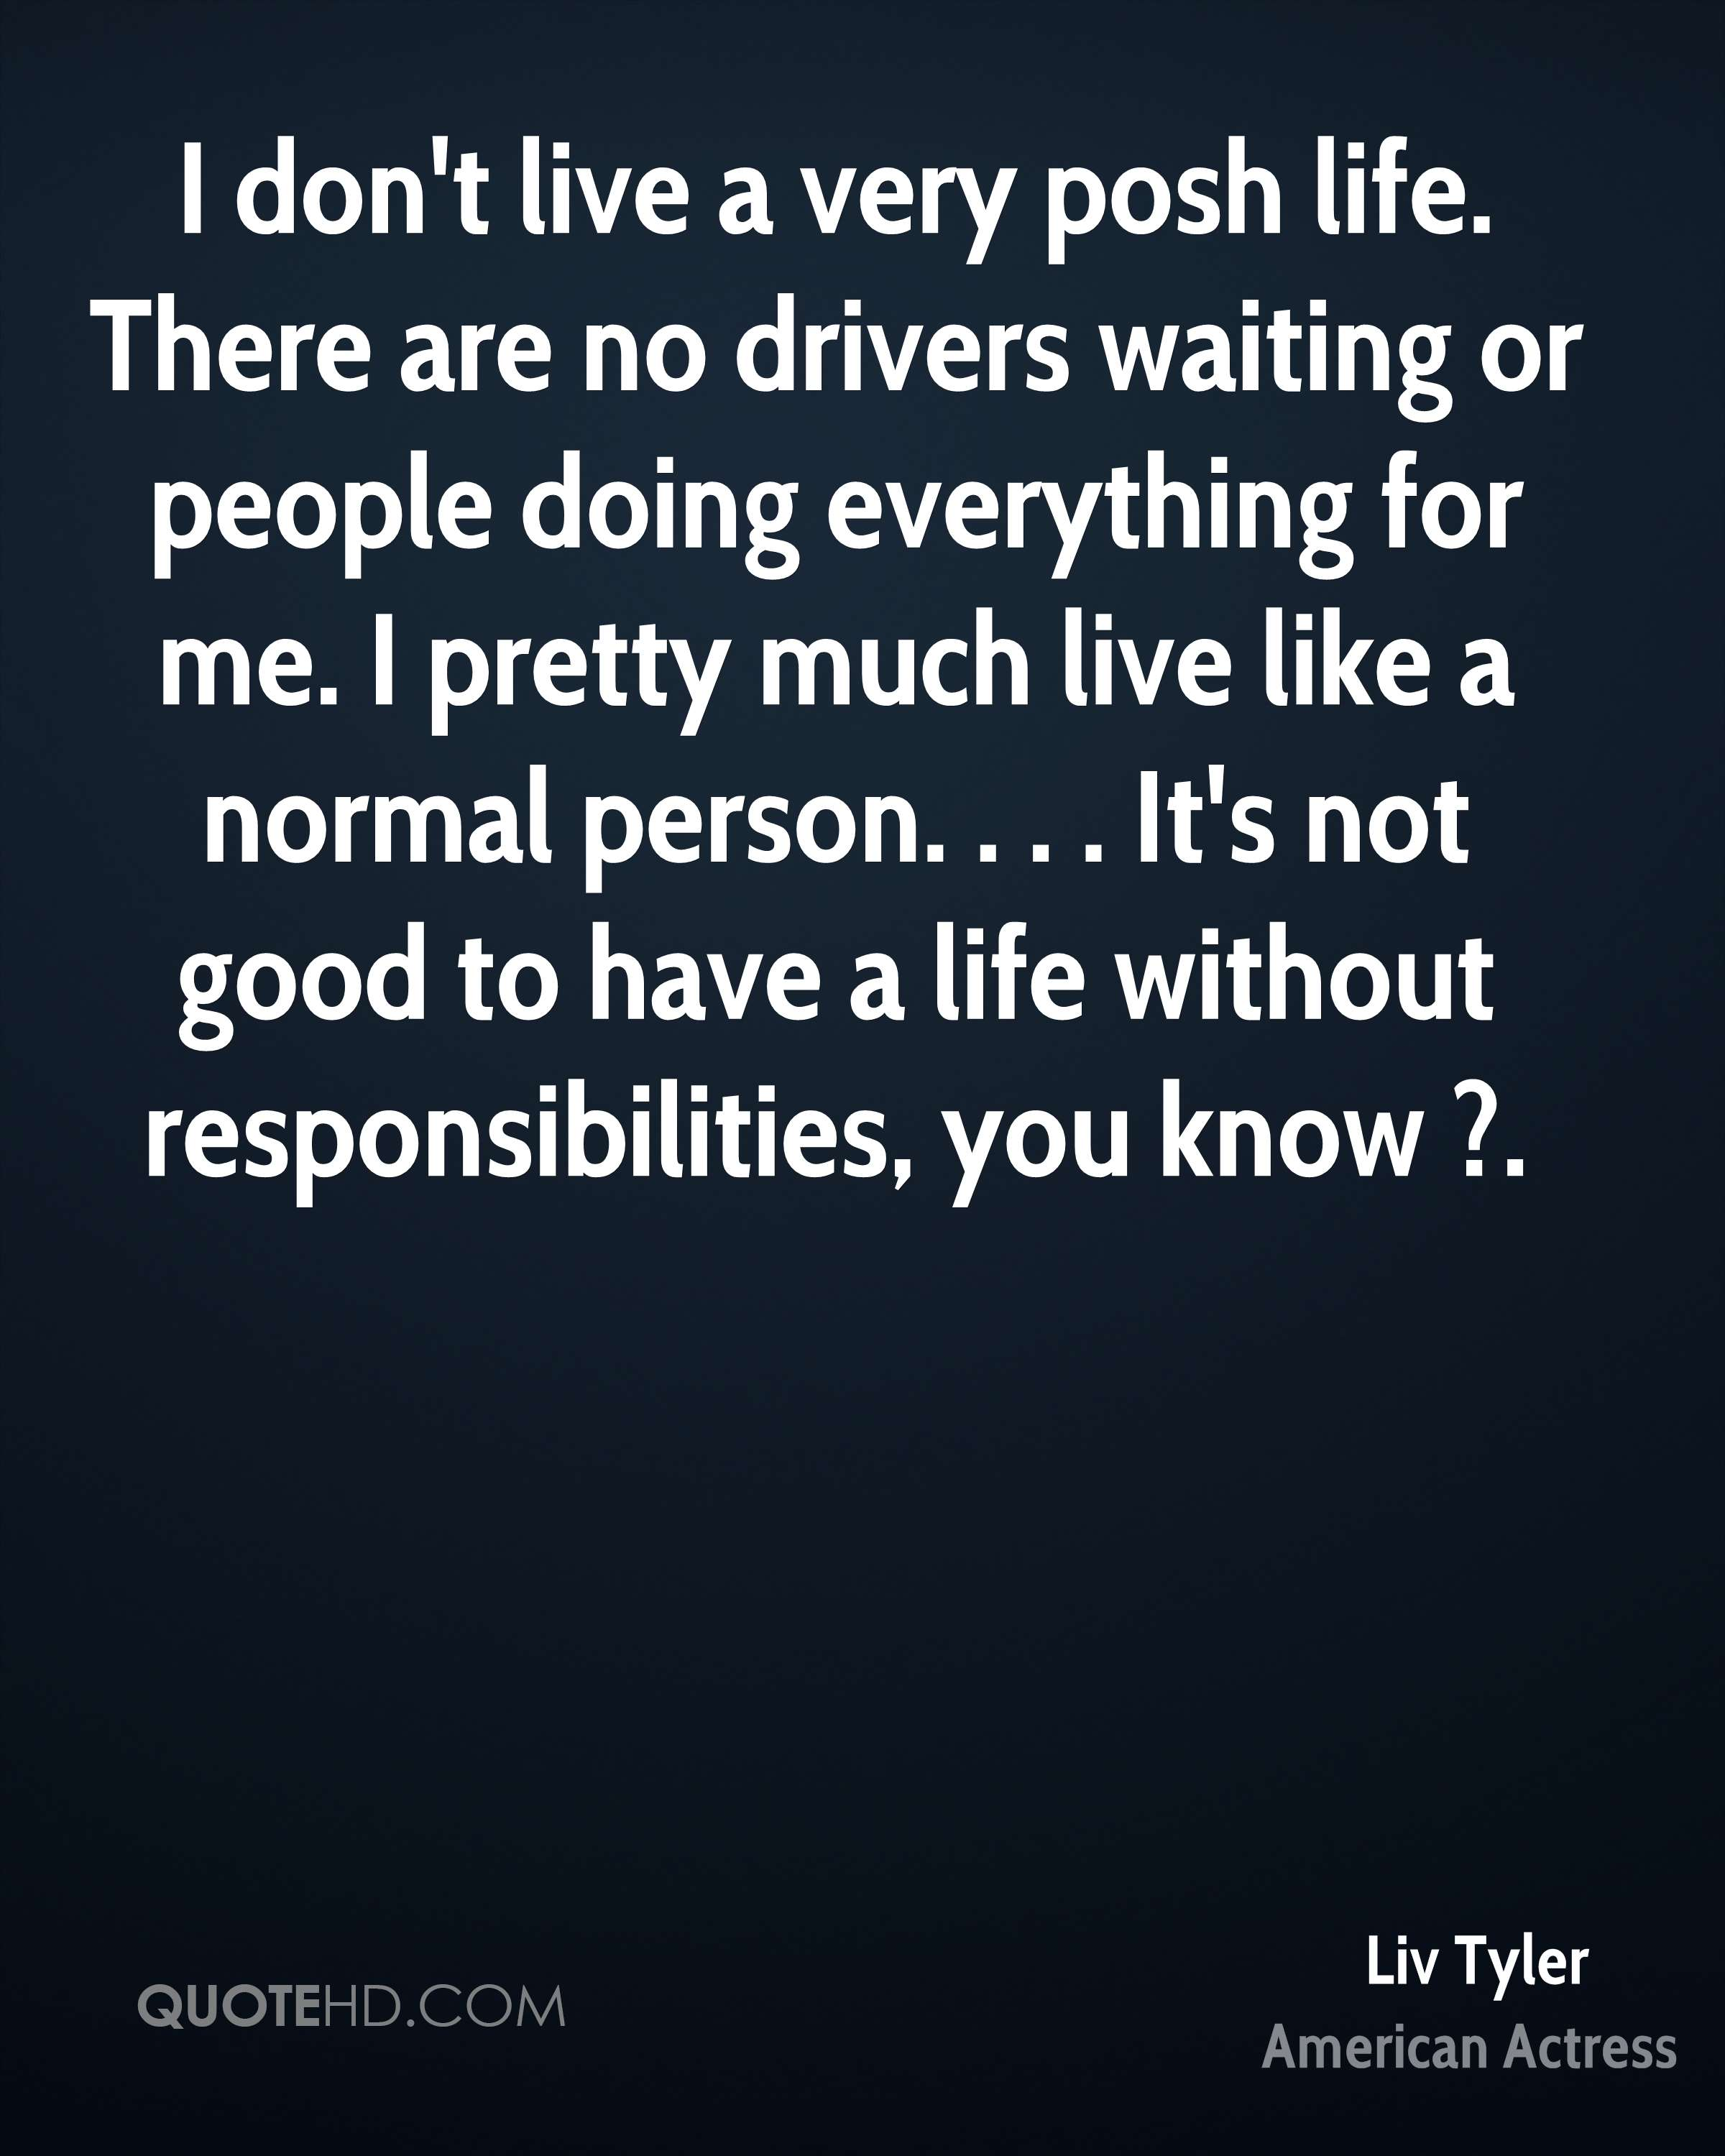 I don't live a very posh life. There are no drivers waiting or people doing everything for me. I pretty much live like a normal person. . . . It's not good to have a life without responsibilities, you know ?.